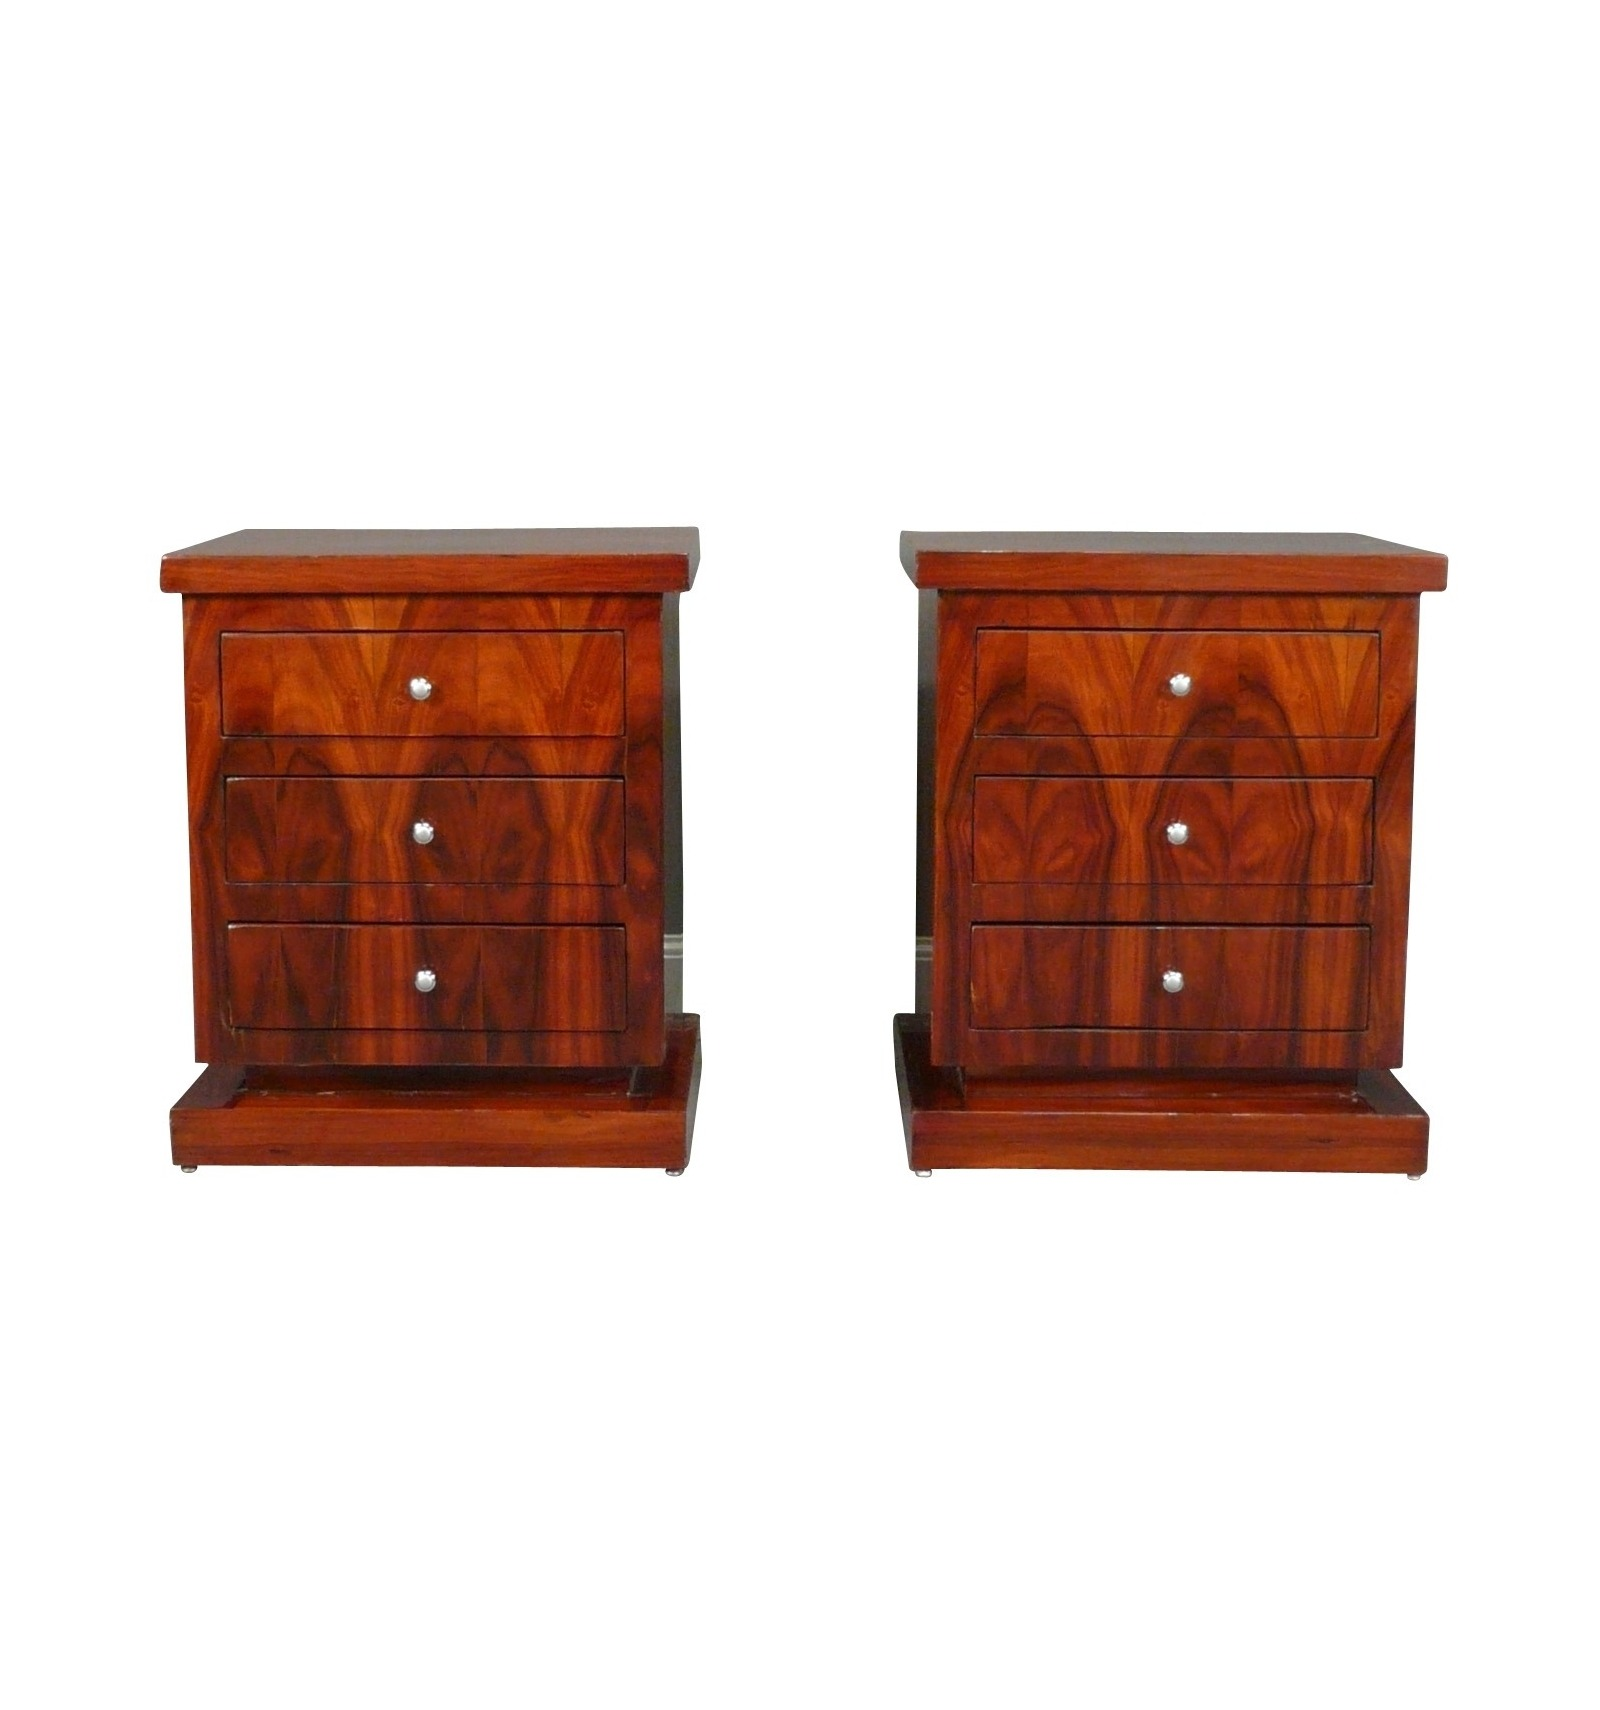 petite commode art deco meubles art d co. Black Bedroom Furniture Sets. Home Design Ideas